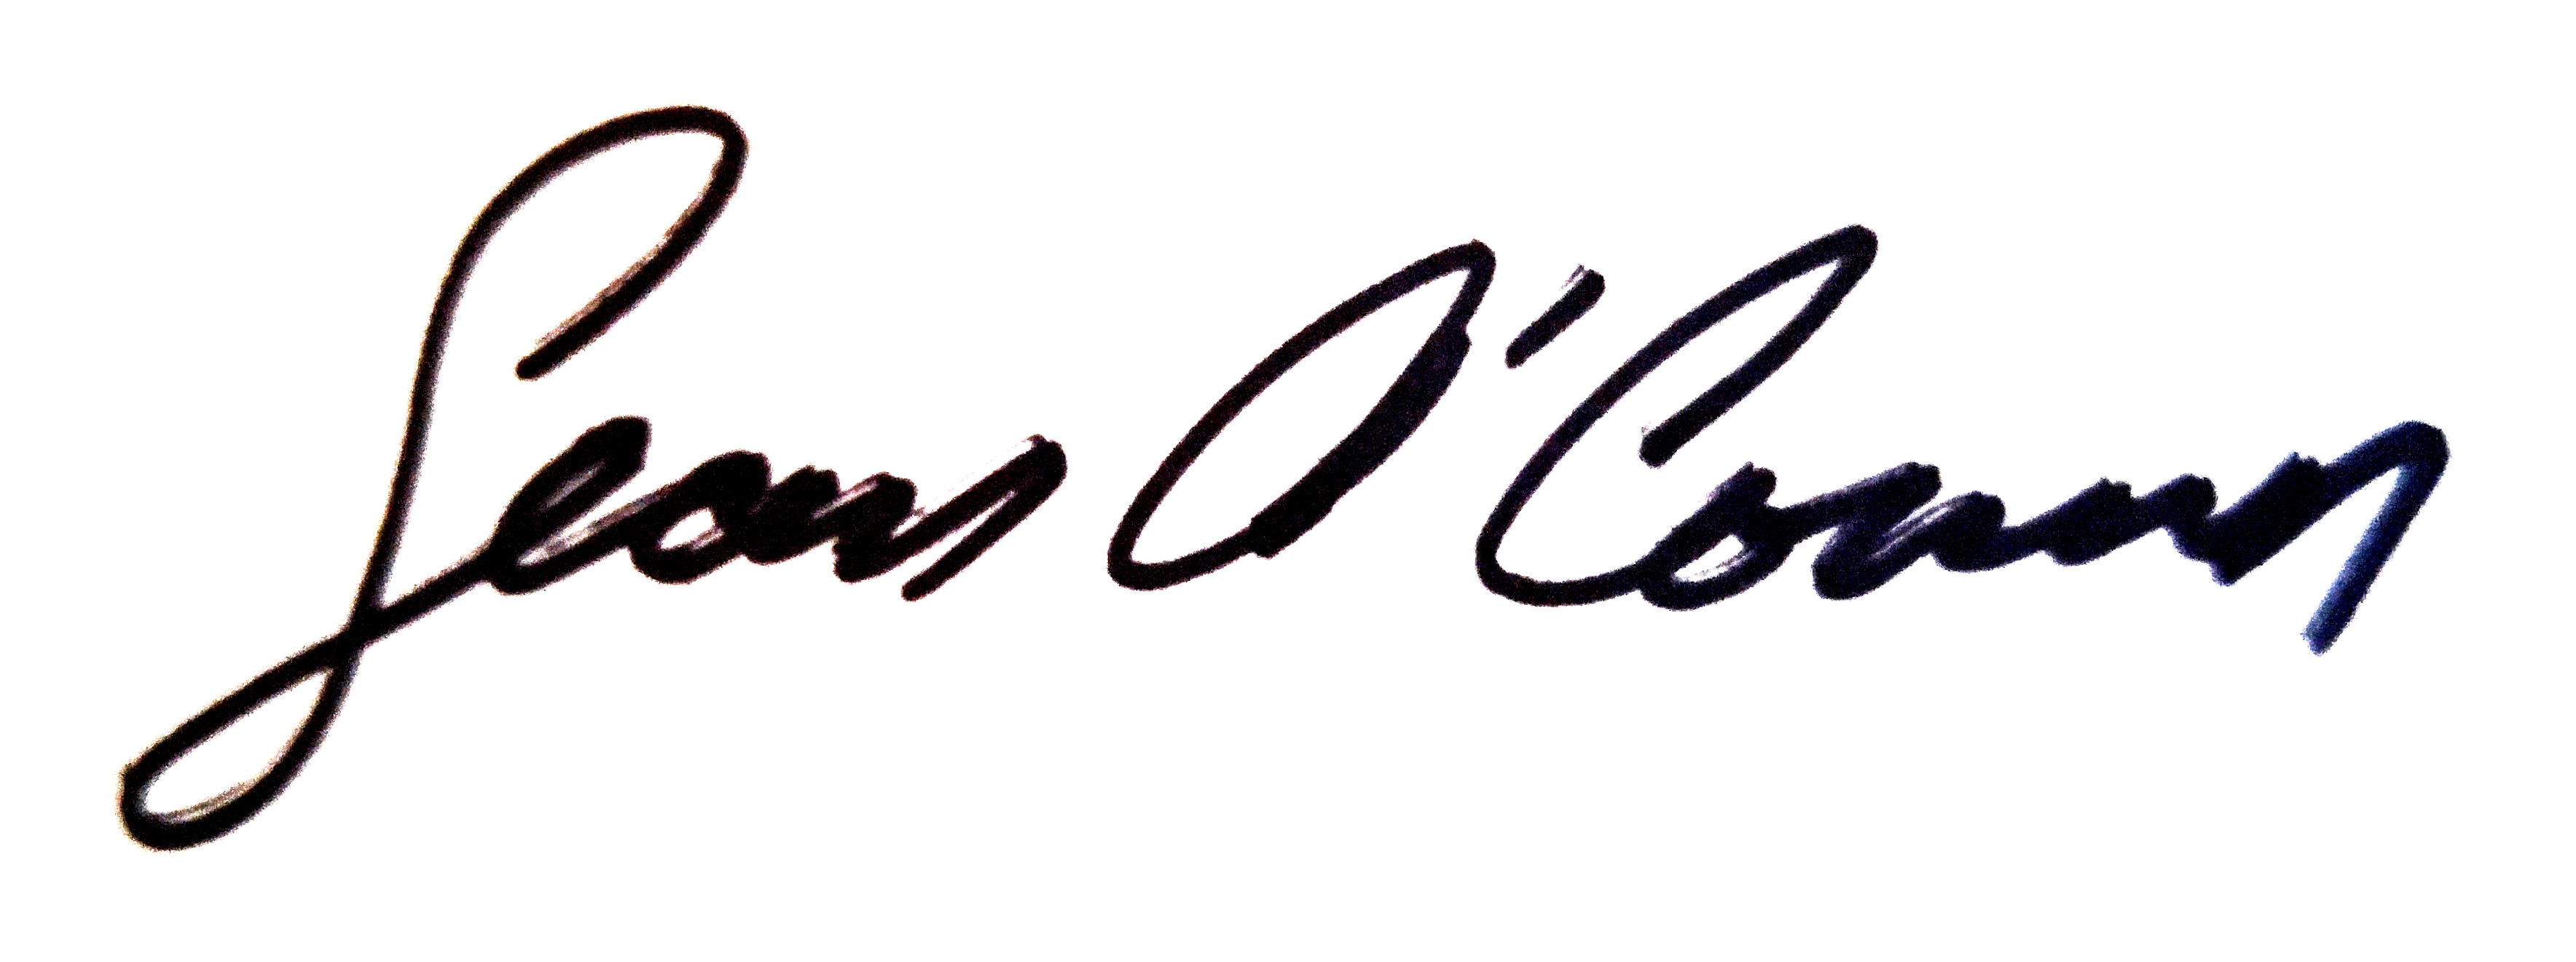 Sean OCONNOR's Signature